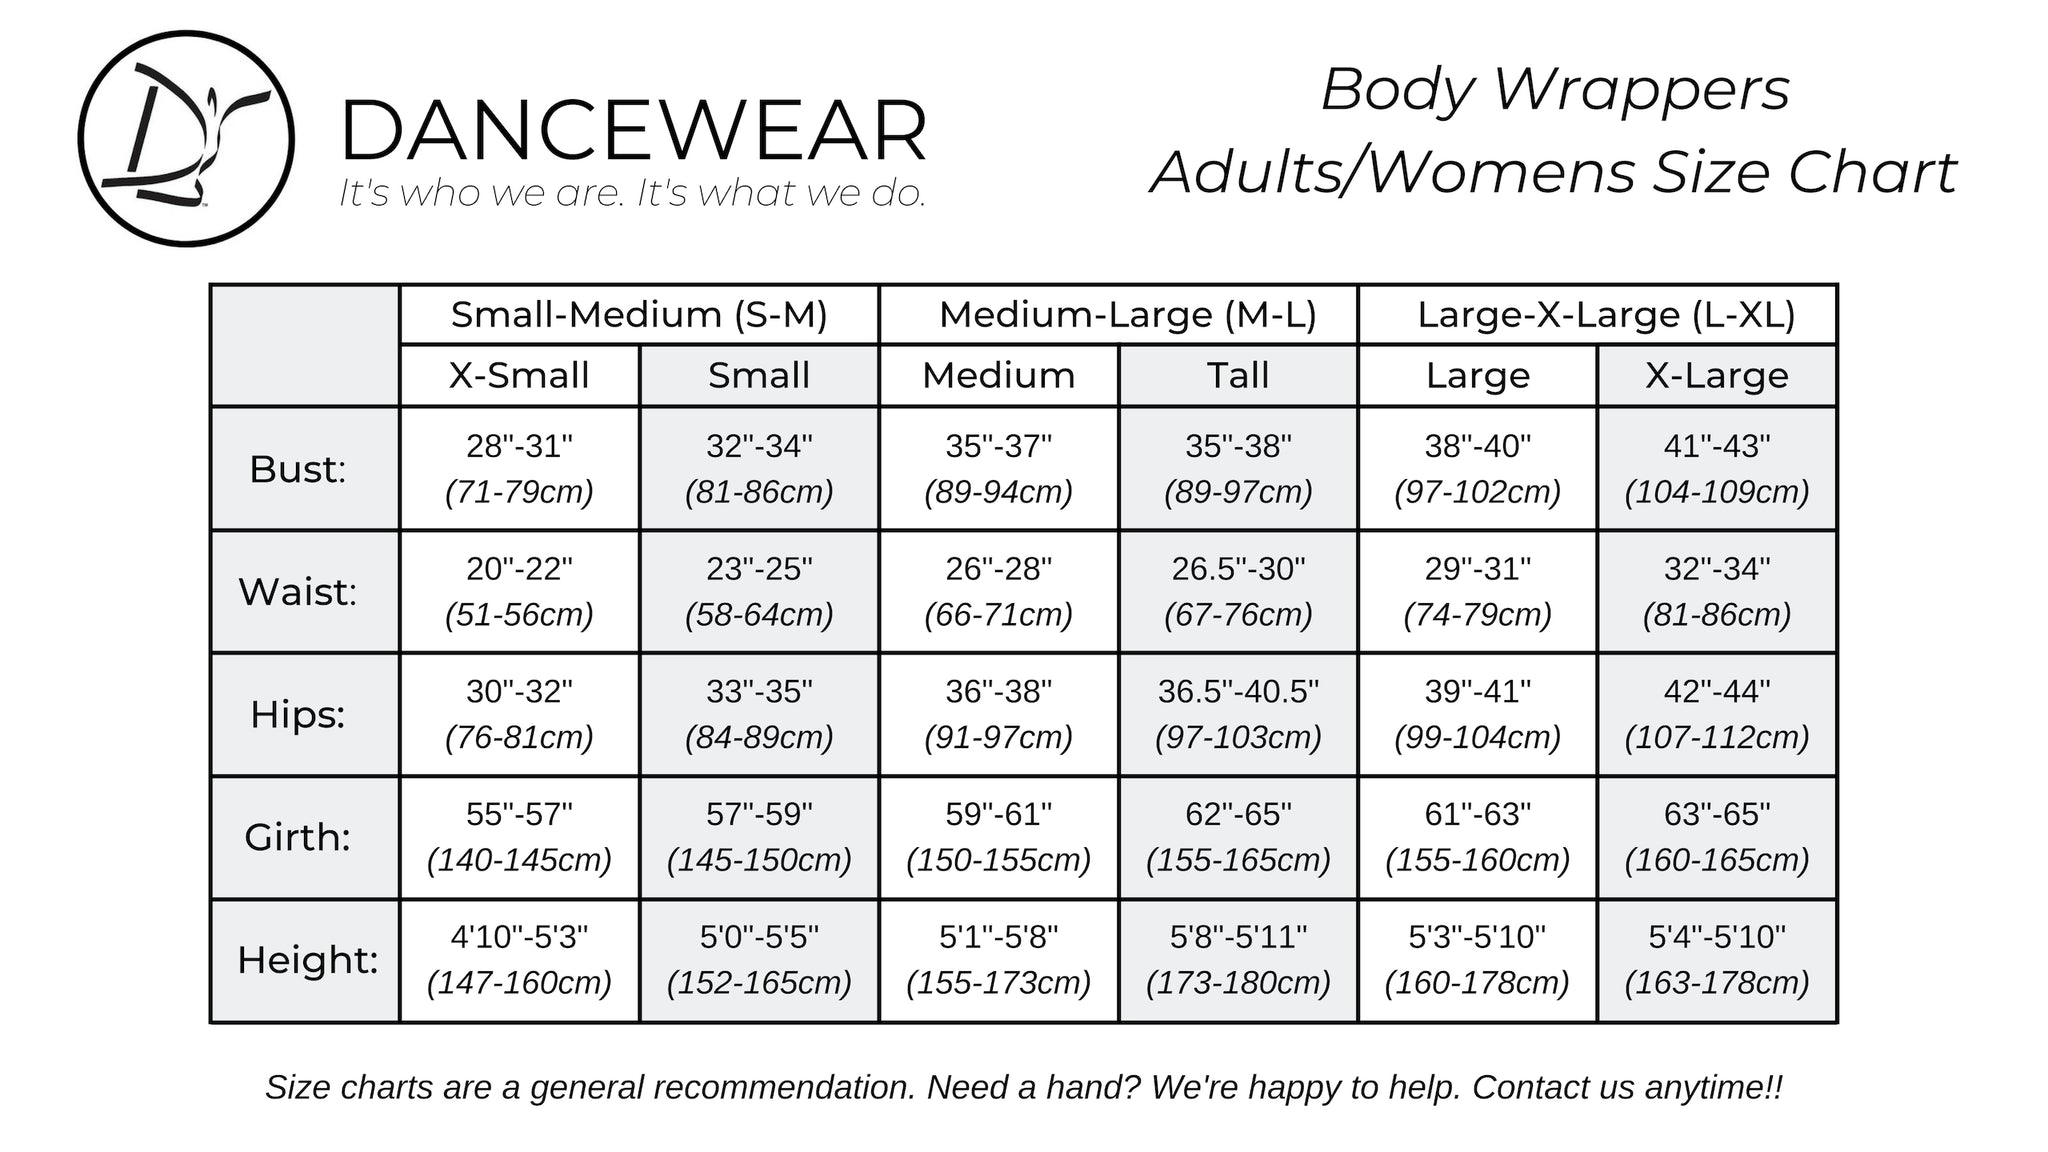 Body Wrappers Adults/Womens Size Chart